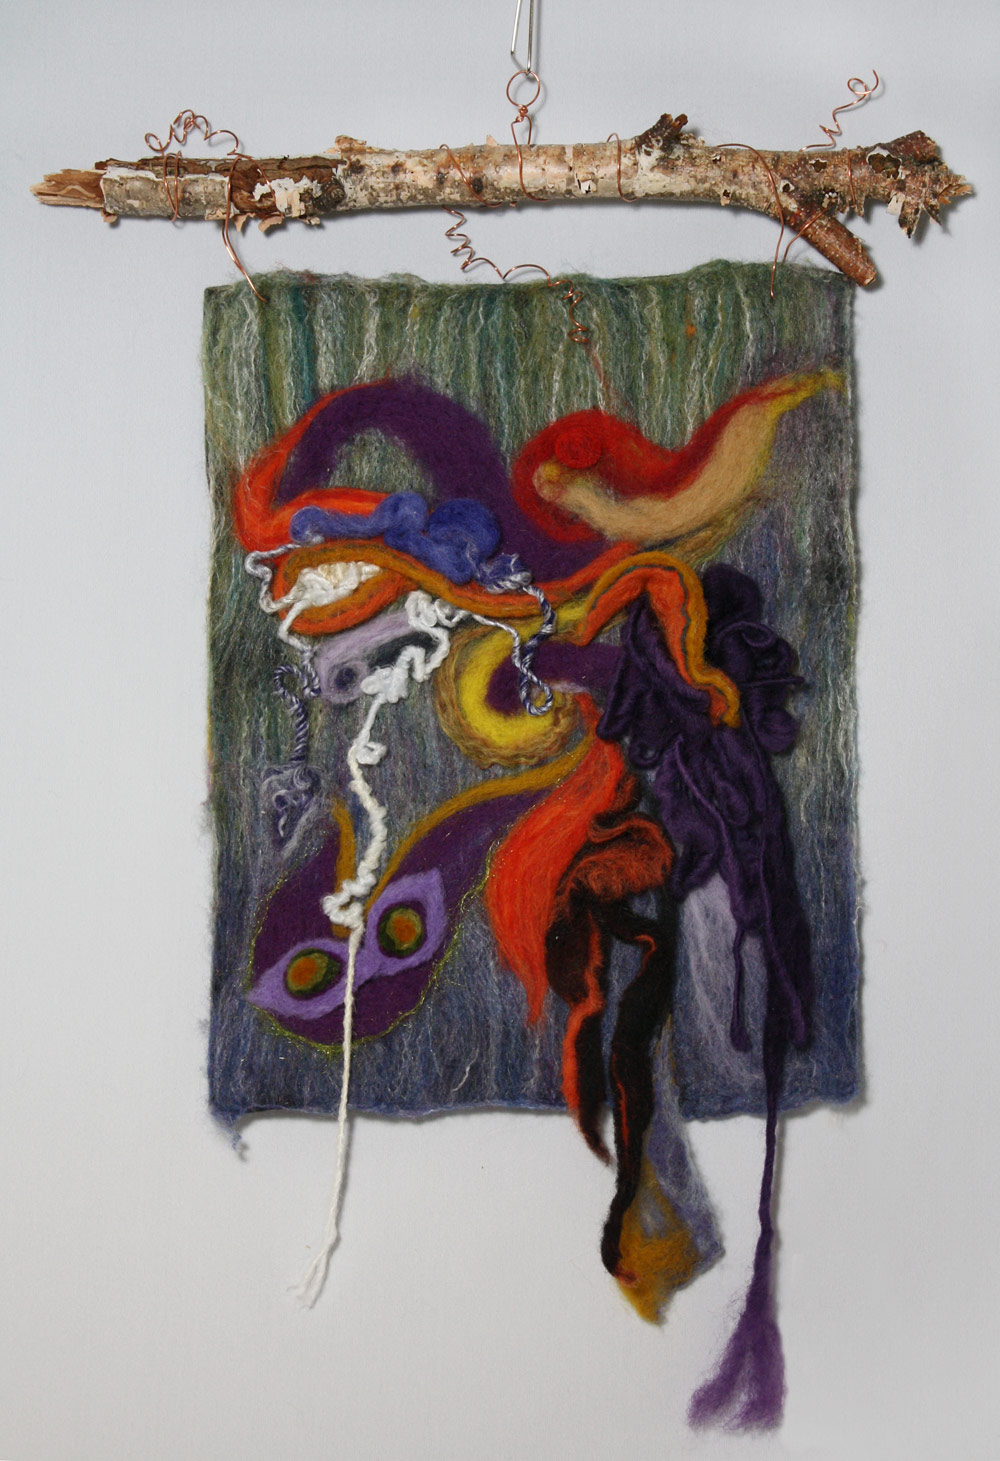 "The Eyes Have It, tapestry, wall sculpture Colourful wet and needle felted sculptural tapestry, 13""w x 18""h including birch branch. $95. For  more info or to purchase, please click HERE."